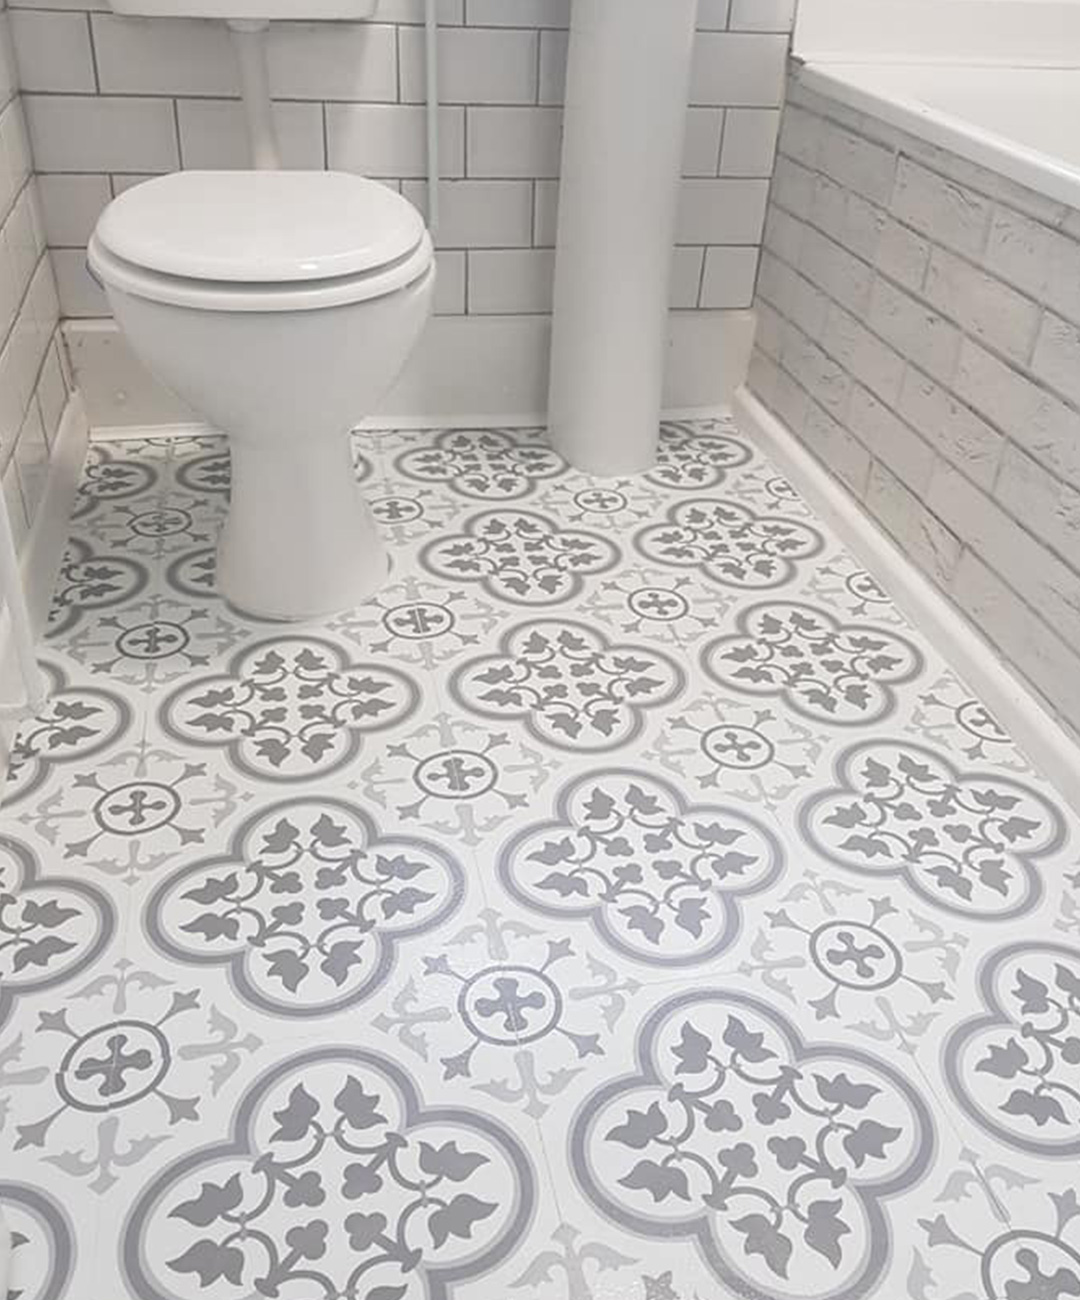 Woman Gives Her Boring Bathroom A Stunning Monochrome Makeover Using 28 Stick On Tiles From Dunelm